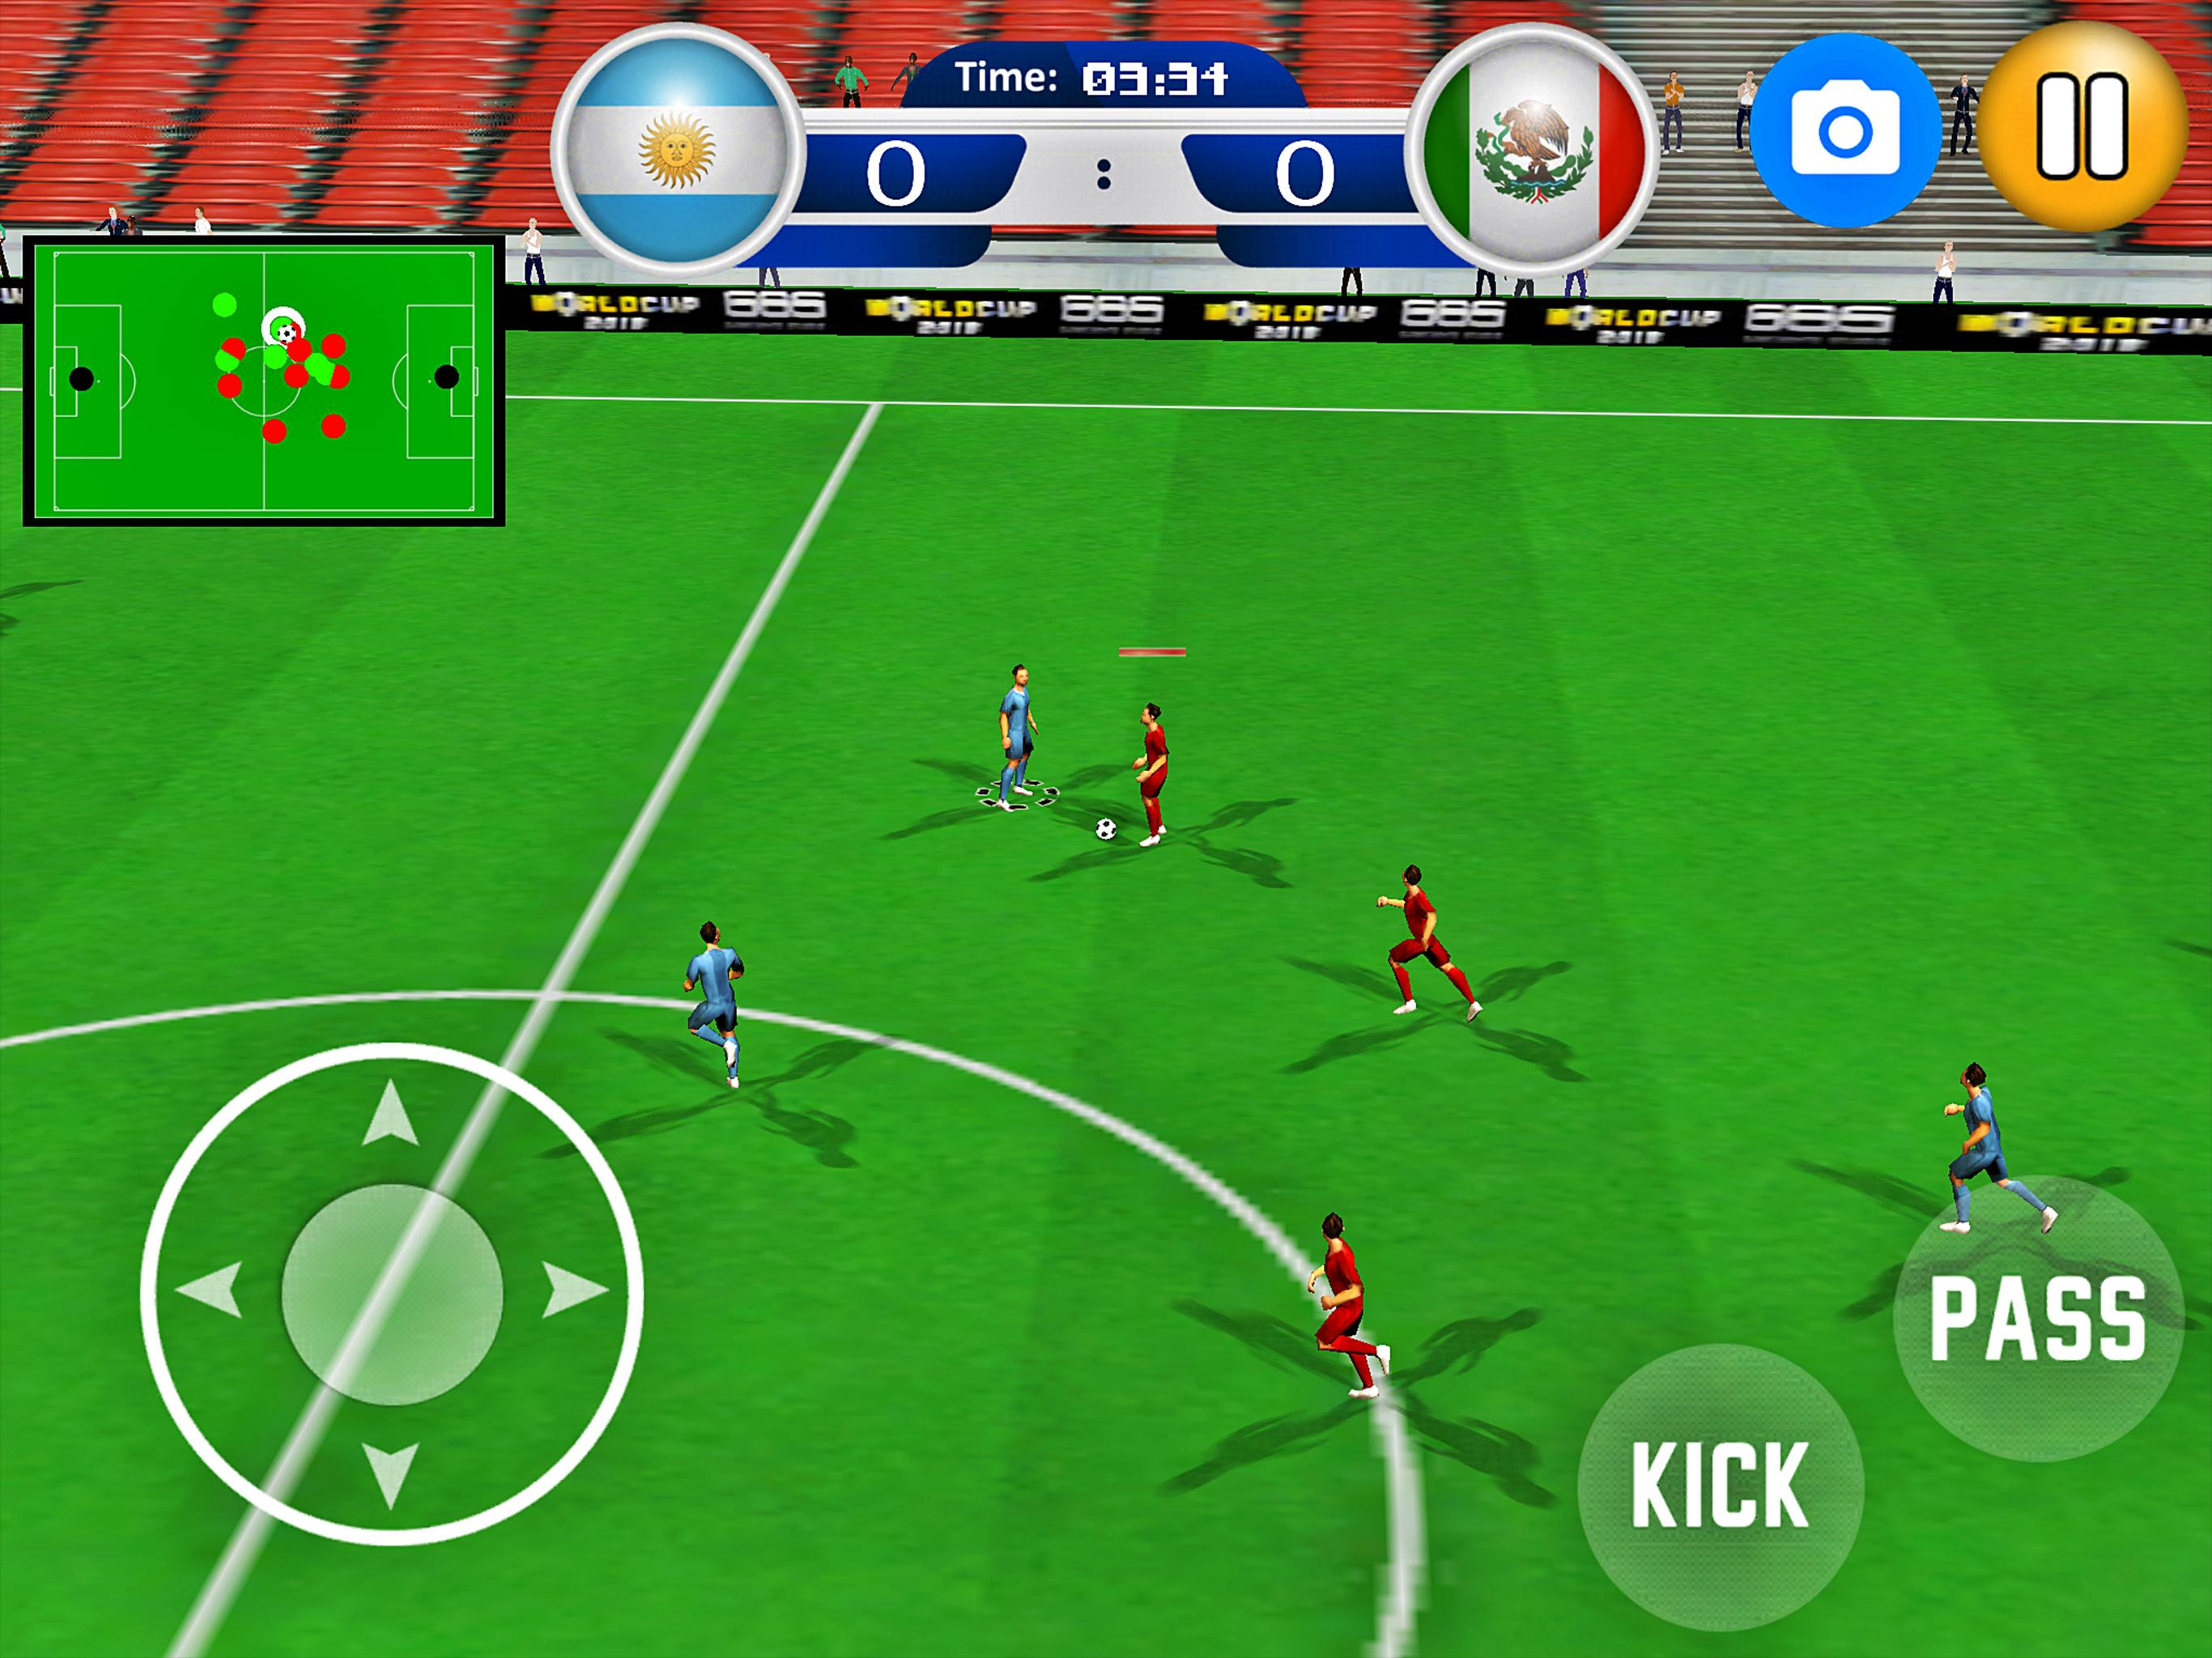 Games World Cup 2020.World Cup 2020 Soccer Games Real Football Games For